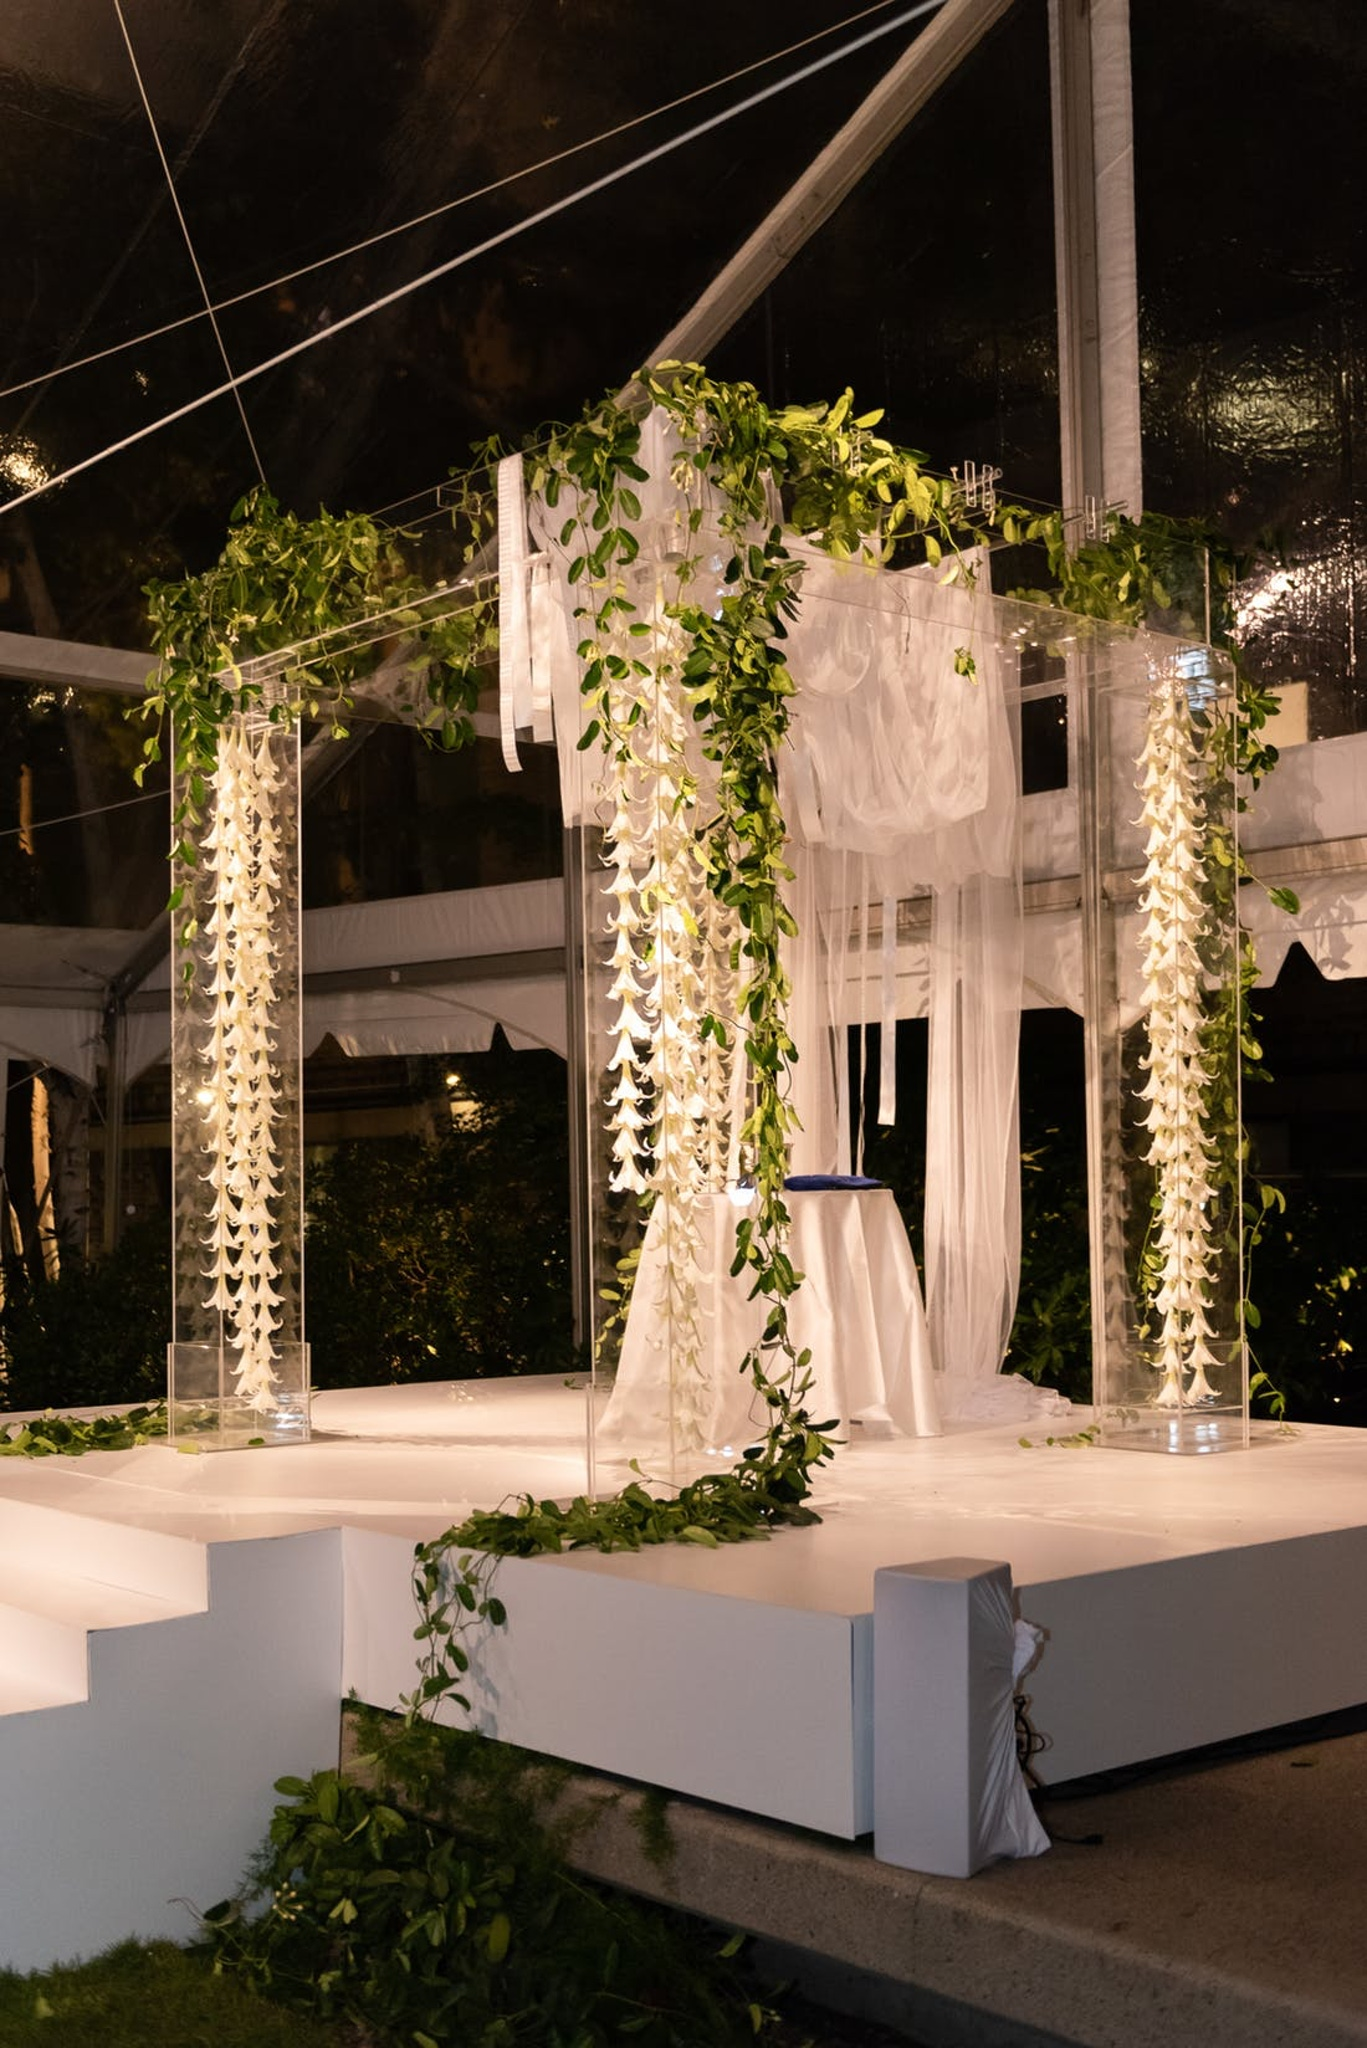 white wedding ceremony Chuppah with greenery